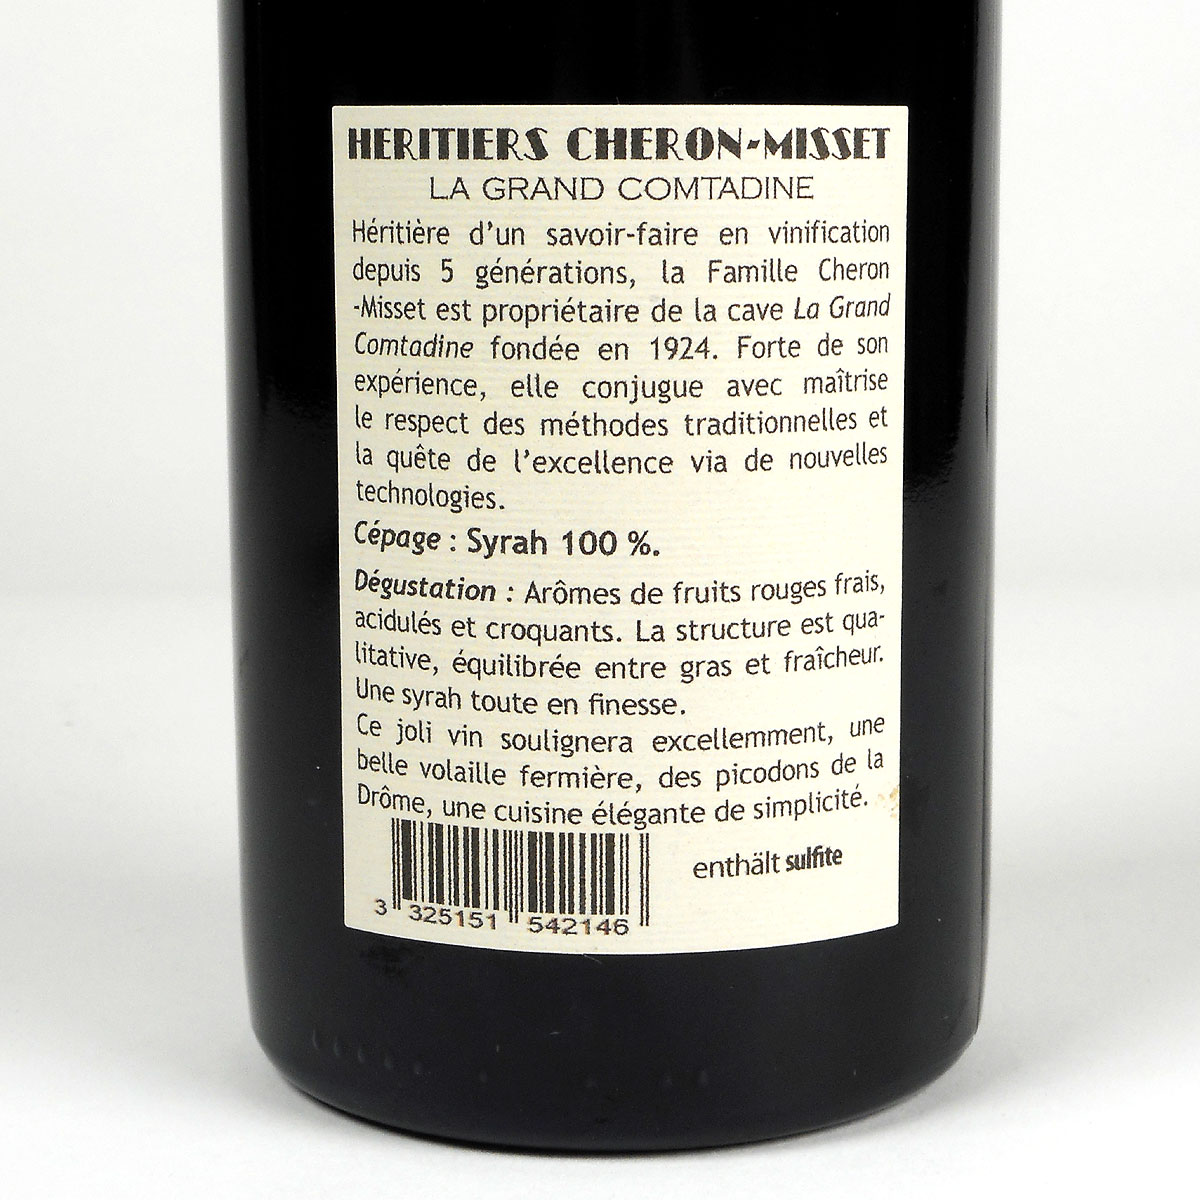 Crozes-Hermitage: Héritiers Cheron-Misset 'La Grand Comtadine' 2018 - Bottle Rear Label